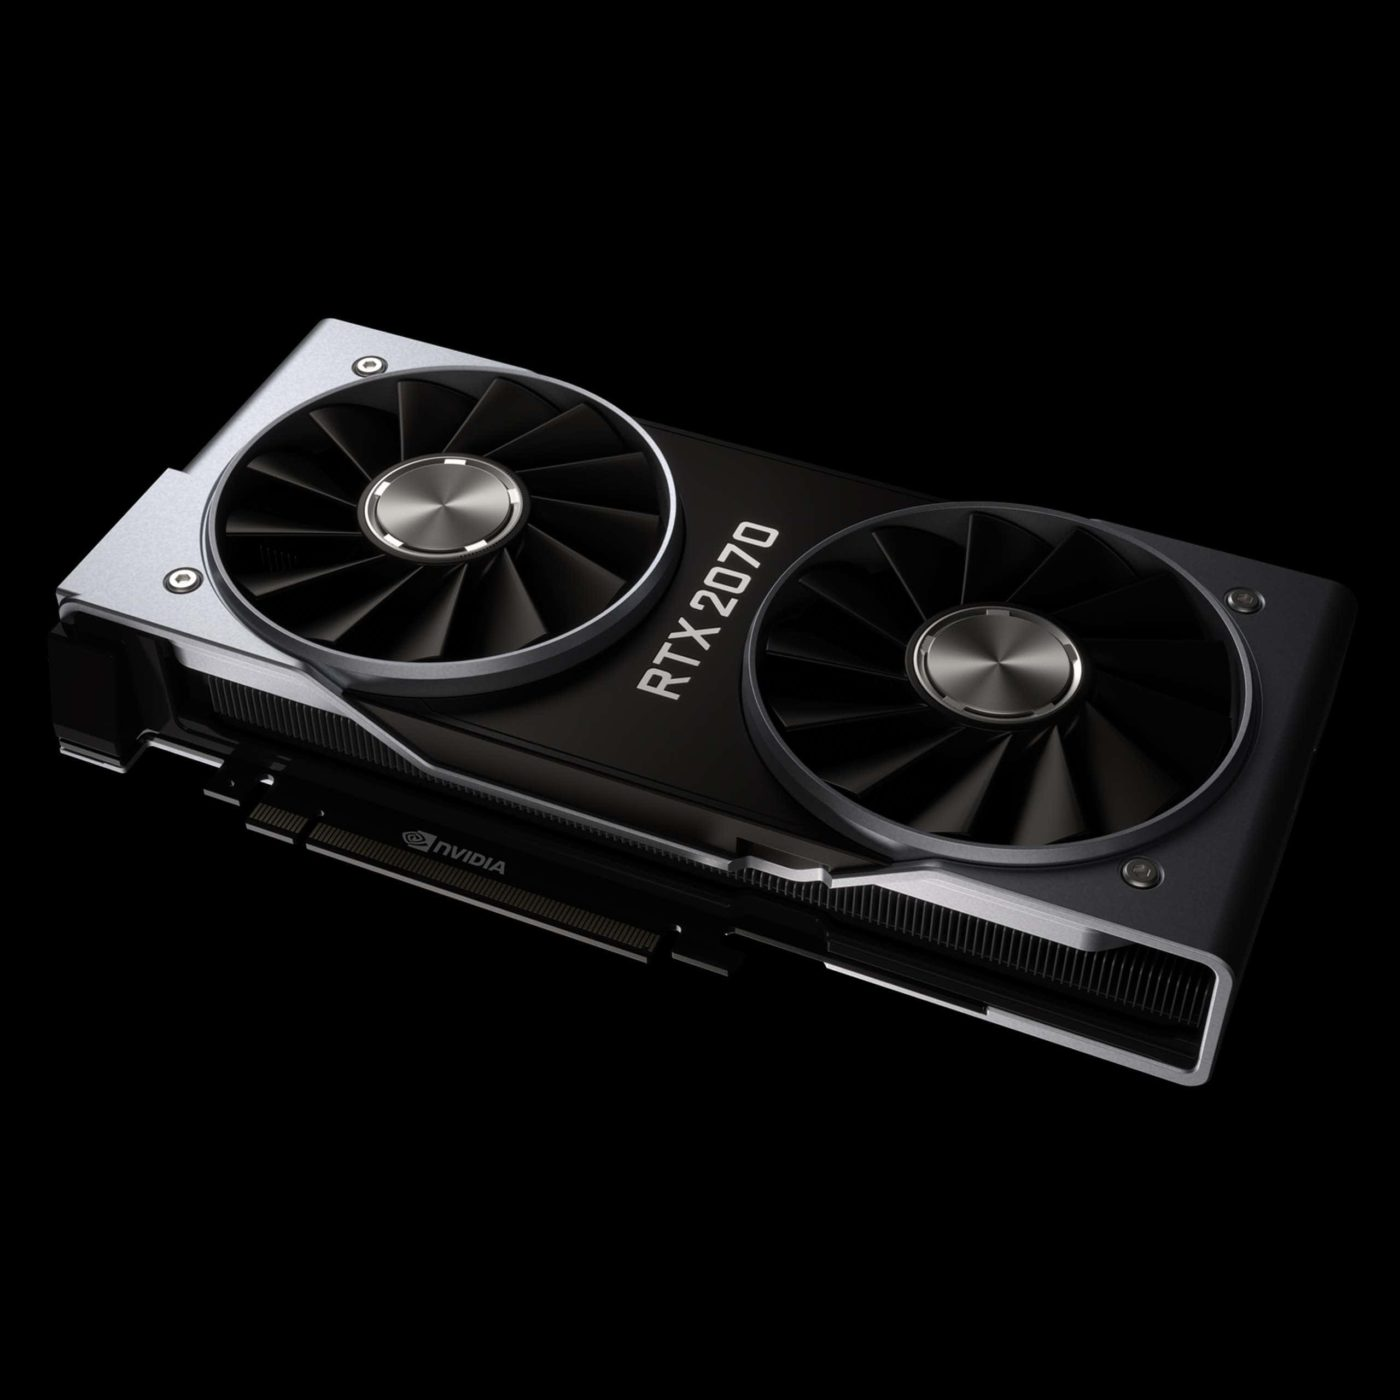 Alleged Nvidia RTX 2080 Ti Benchmarks Leaked - Suggest Upto A 55% Uplift 1